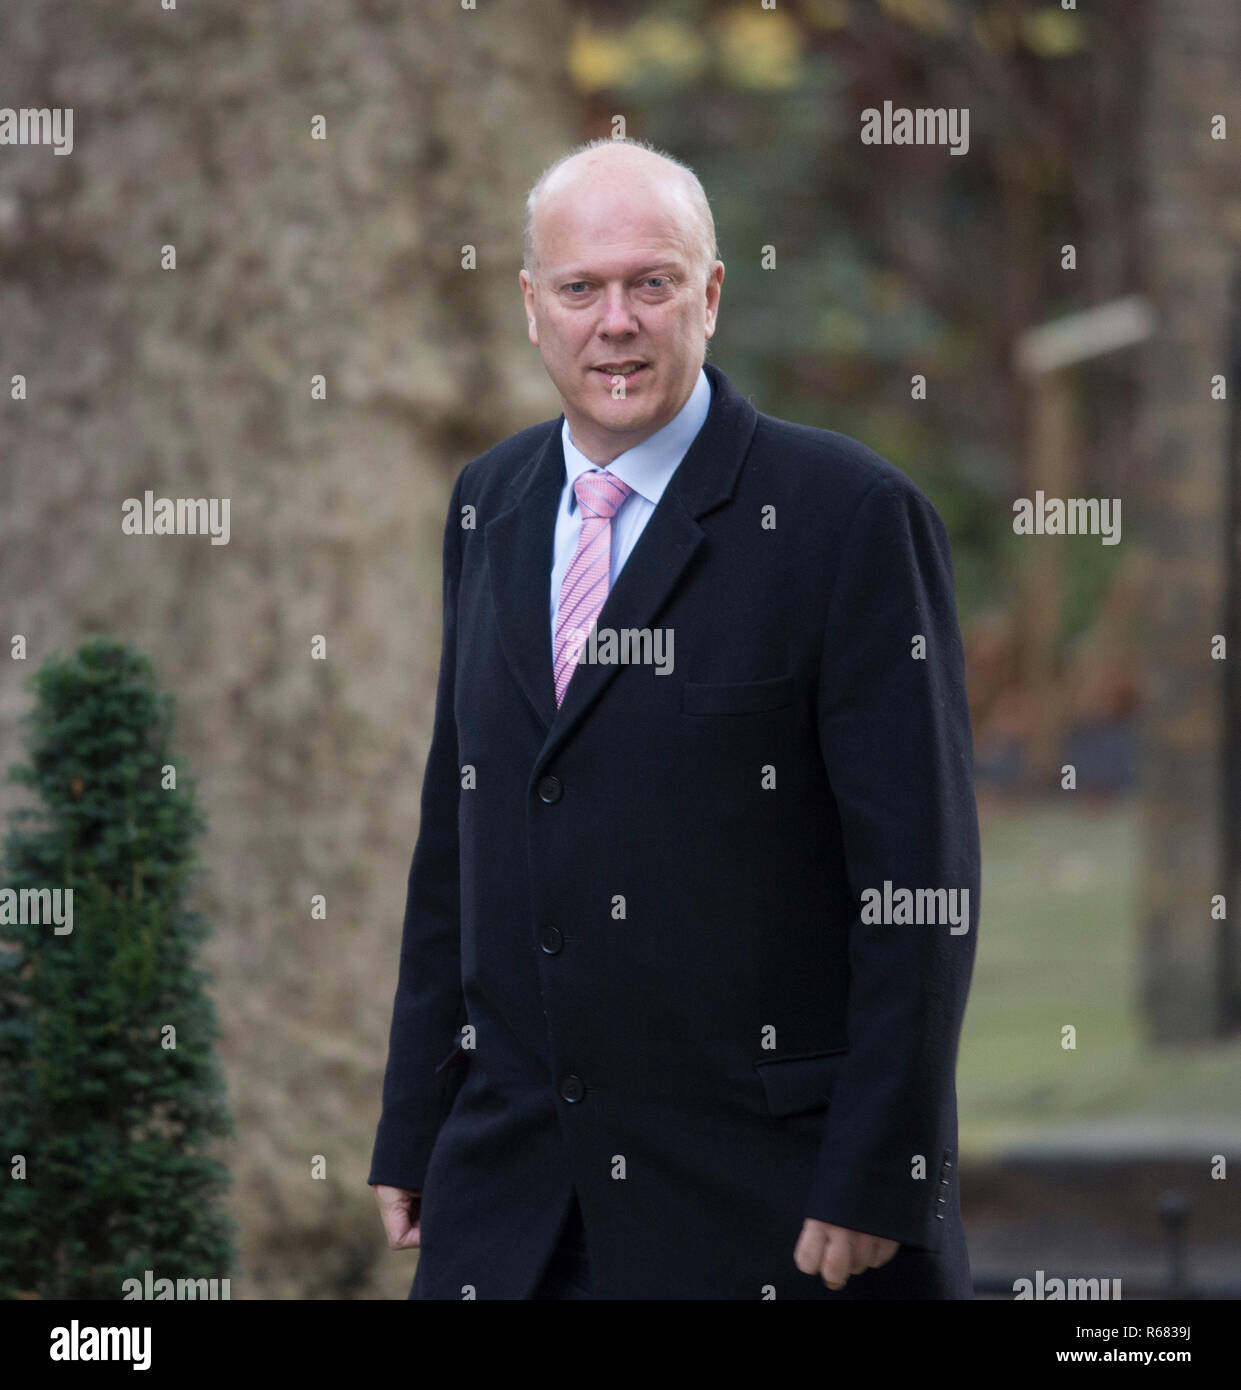 Downing Street, London, UK. 4 December 2018. Chris Grayling, Secretary of State for Transport in Downing Street for weekly cabinet meeting. Credit: Malcolm Park/Alamy Live News. - Stock Image